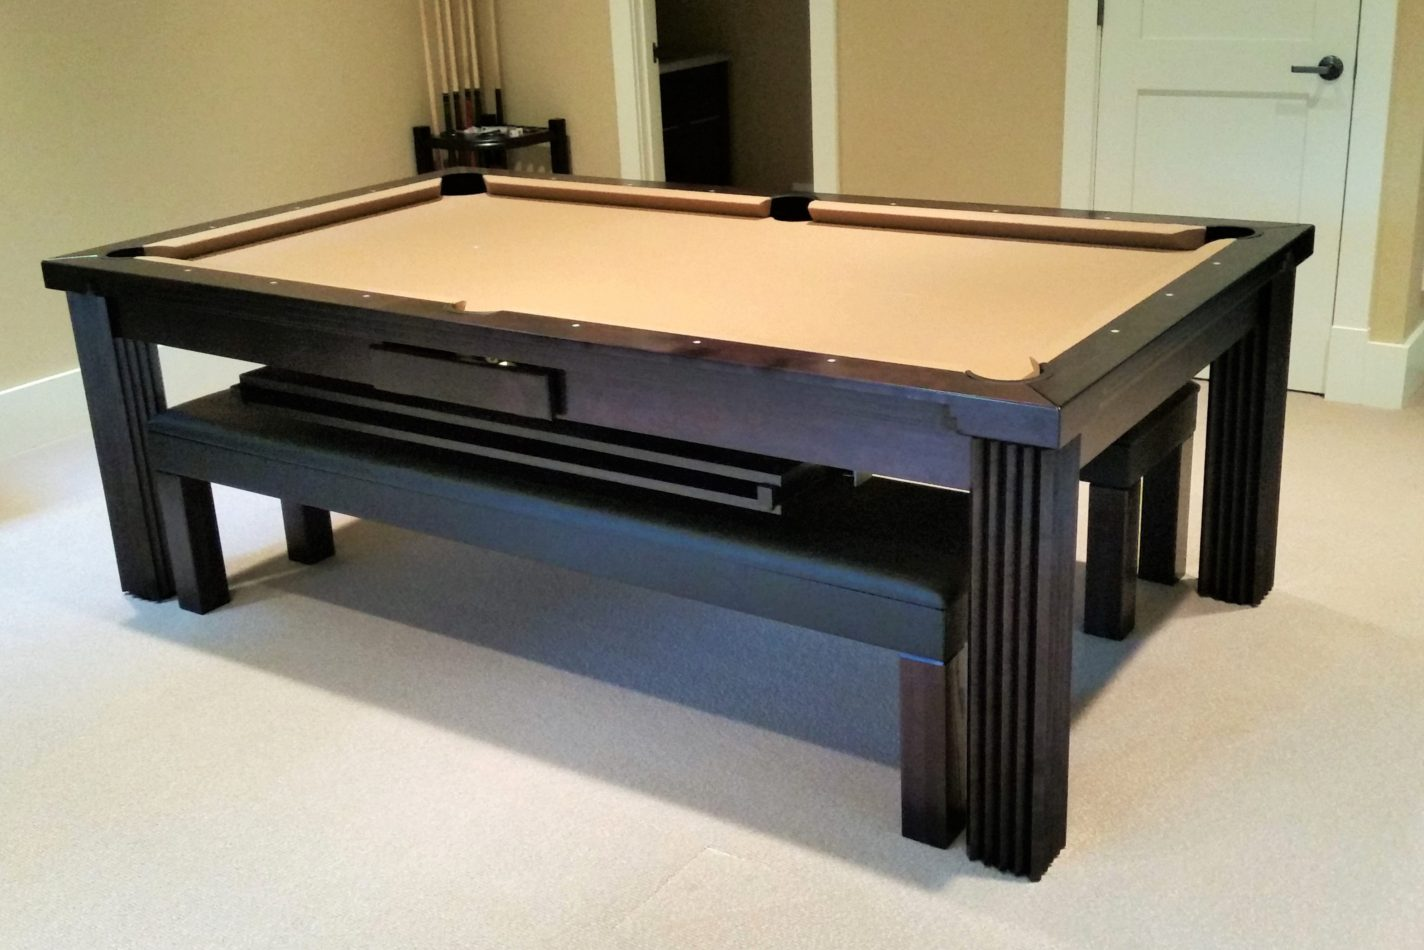 Toledo Convertible Pool Table, Washington